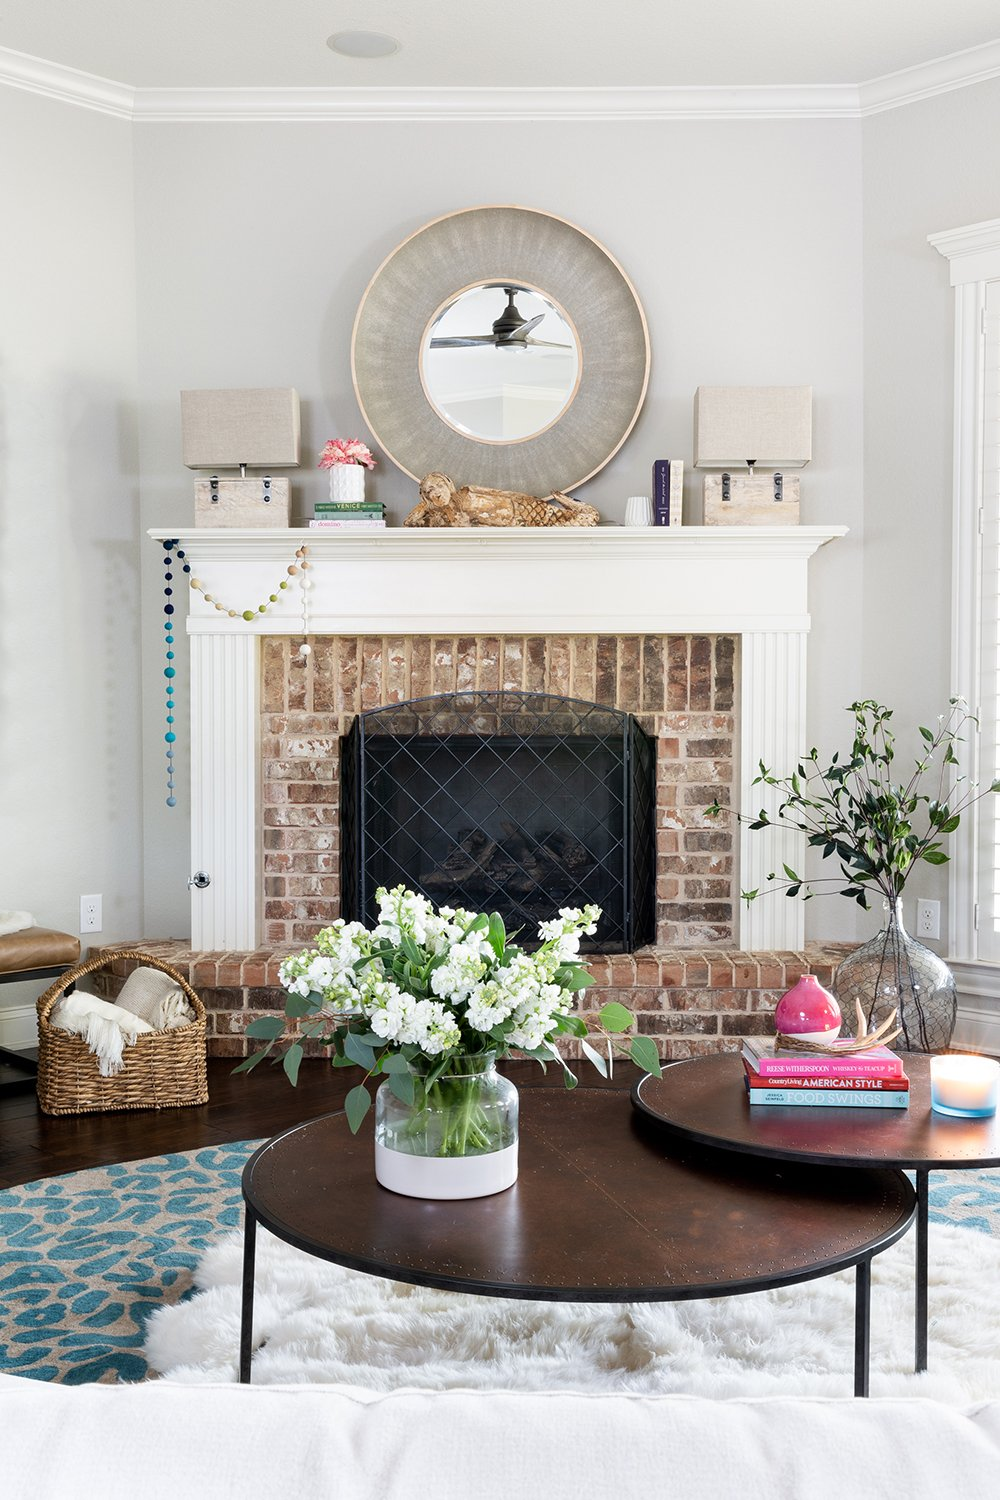 waco living room styled with neutral home decor accessories